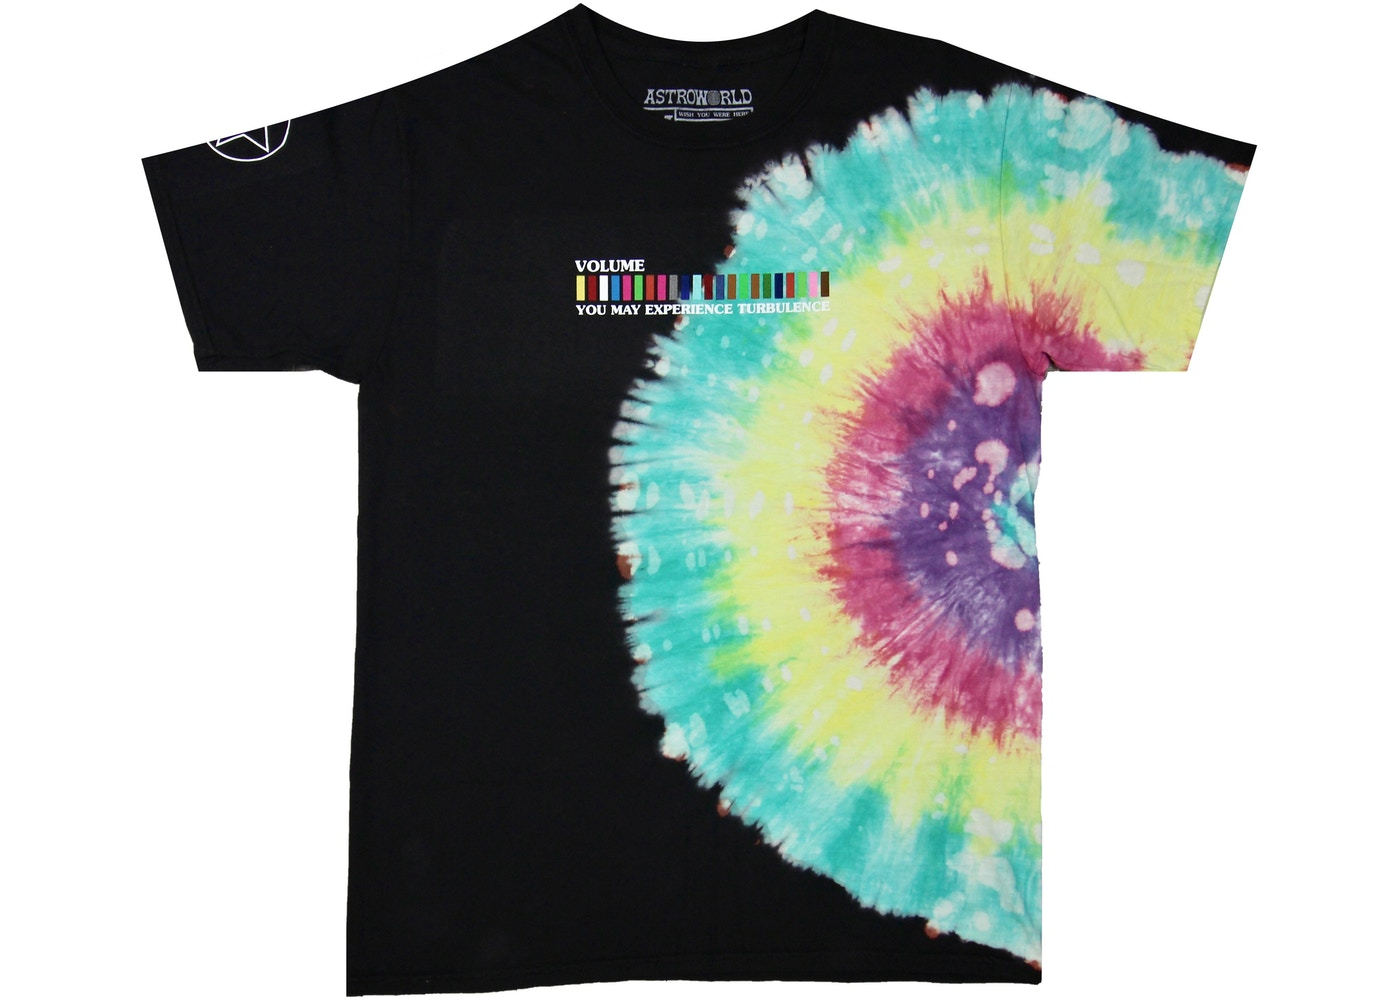 TRAVIS SCOTT ASTROWORLD FESTIVAL RUN TIE DYE TEE BLACK